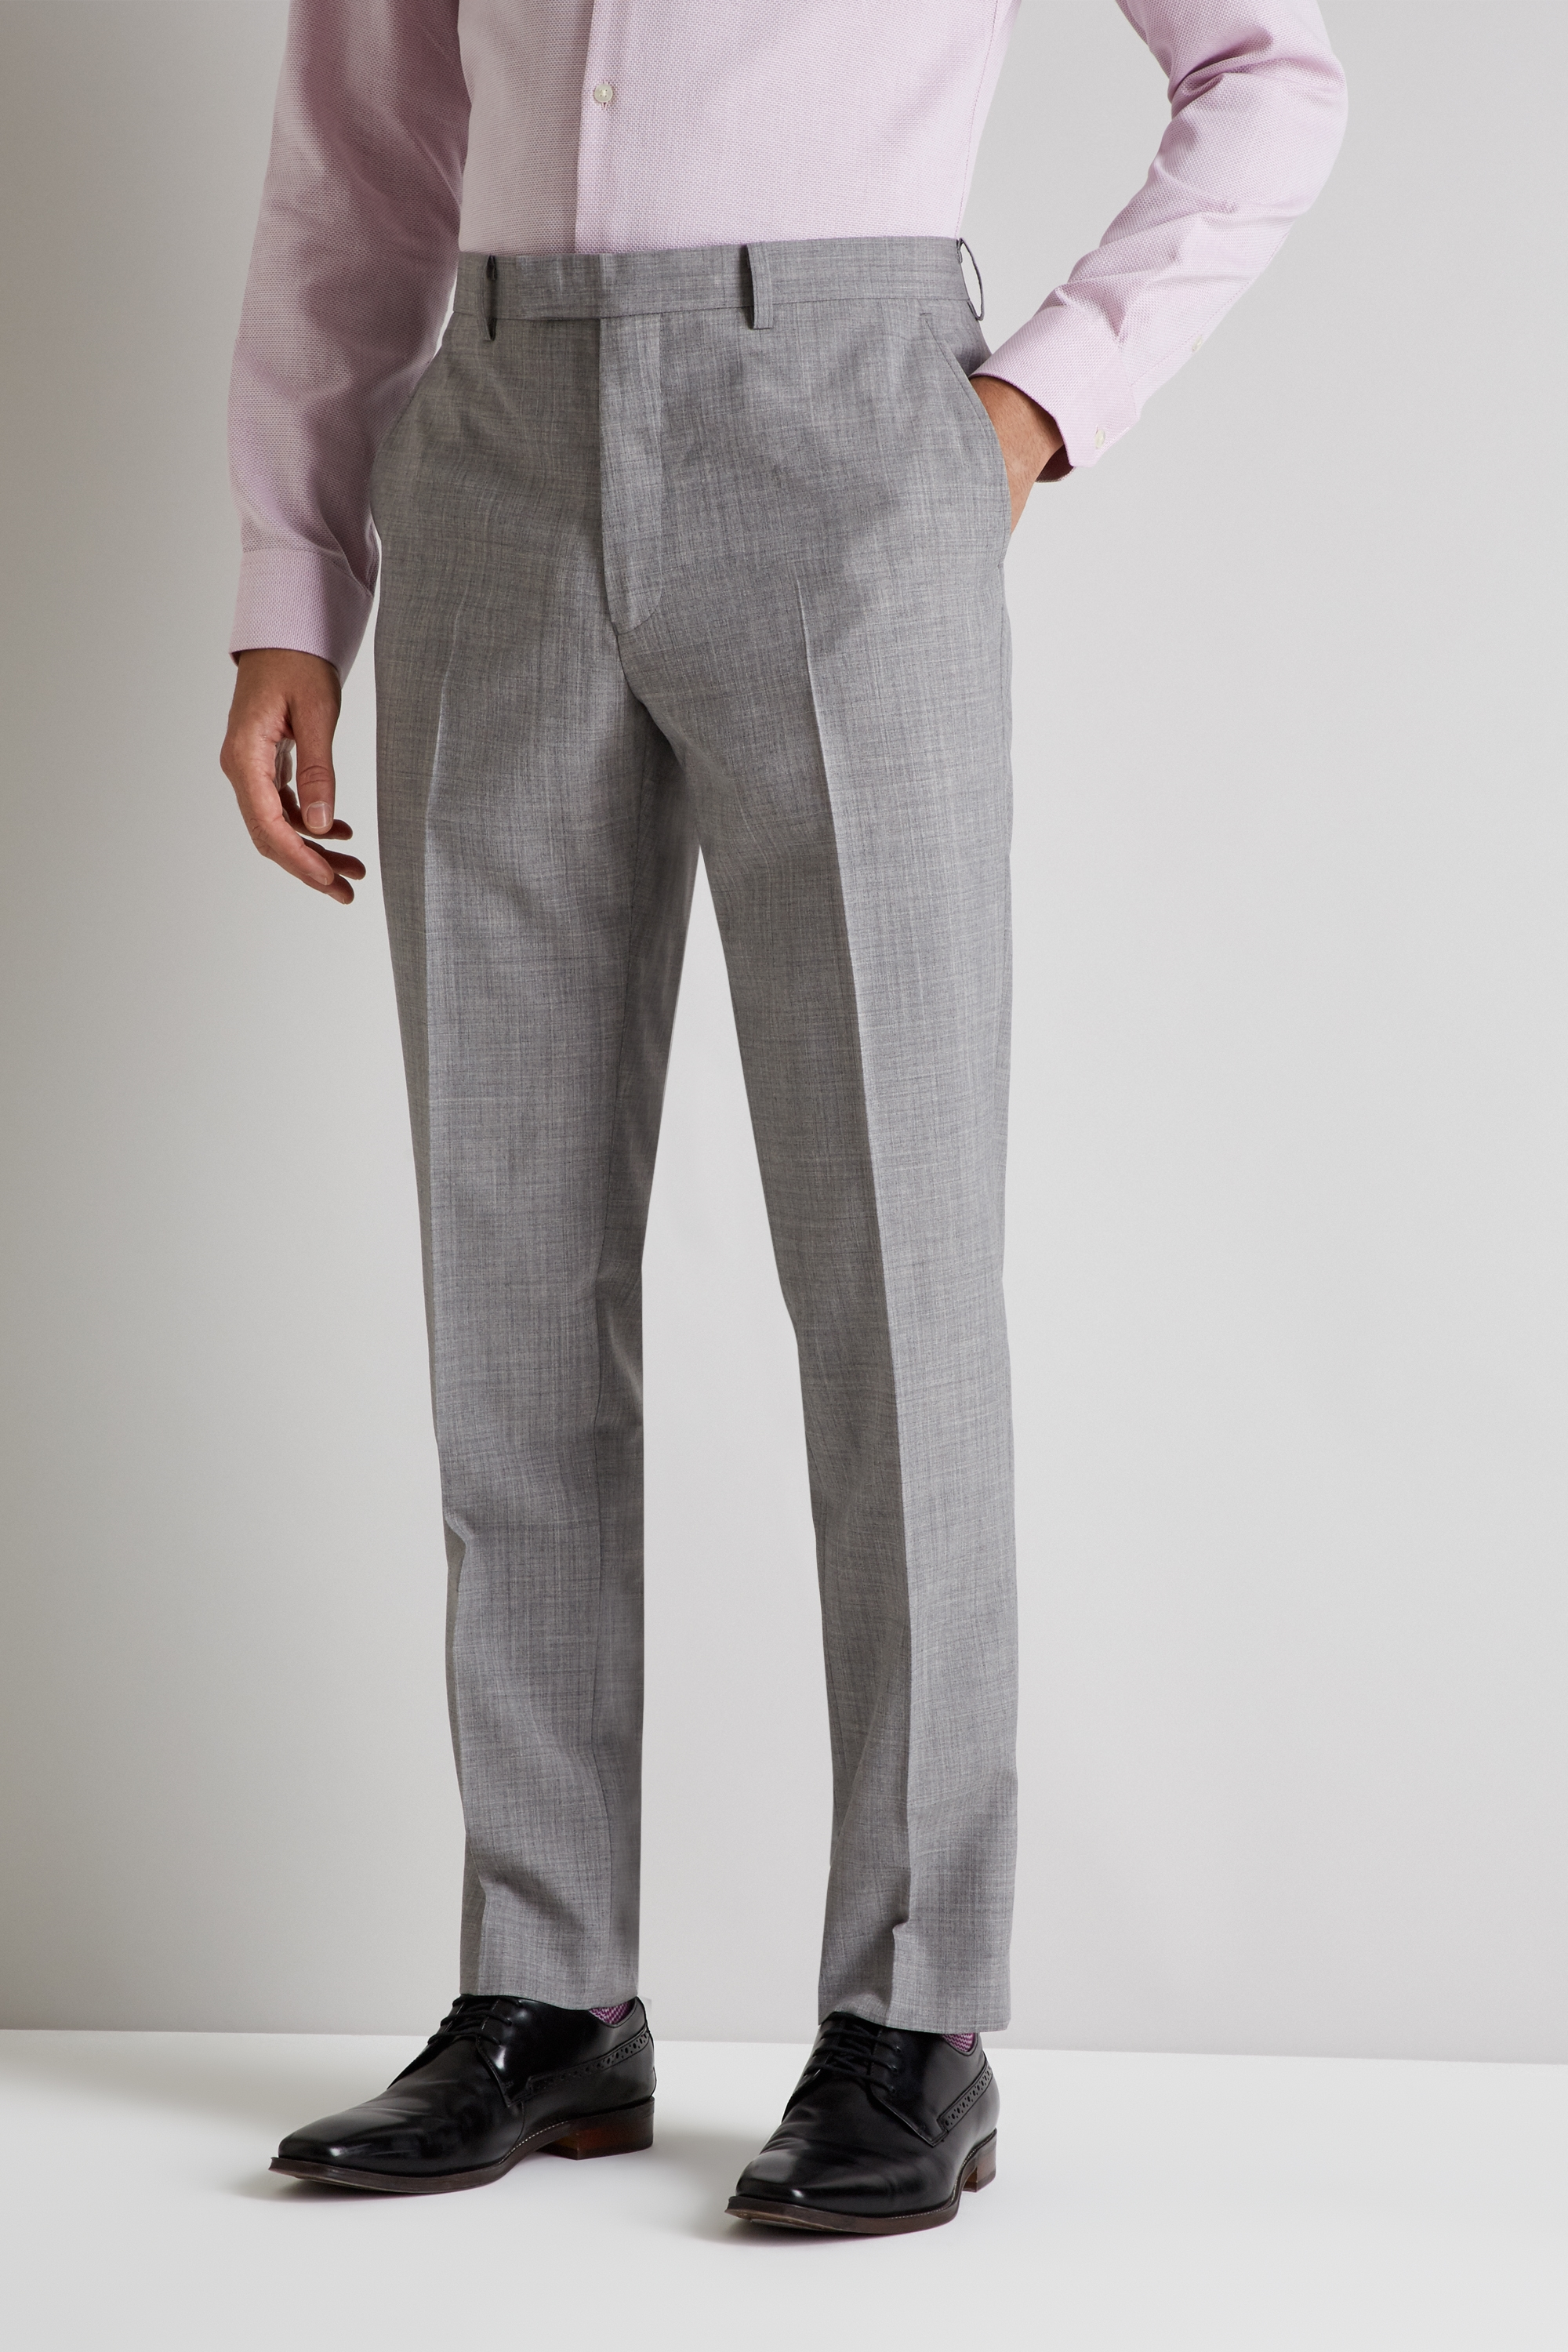 Details about French Connection Mens Grey Trousers Slim Fit Suit Pants Flat  Front Belt Loops ca77144e7784